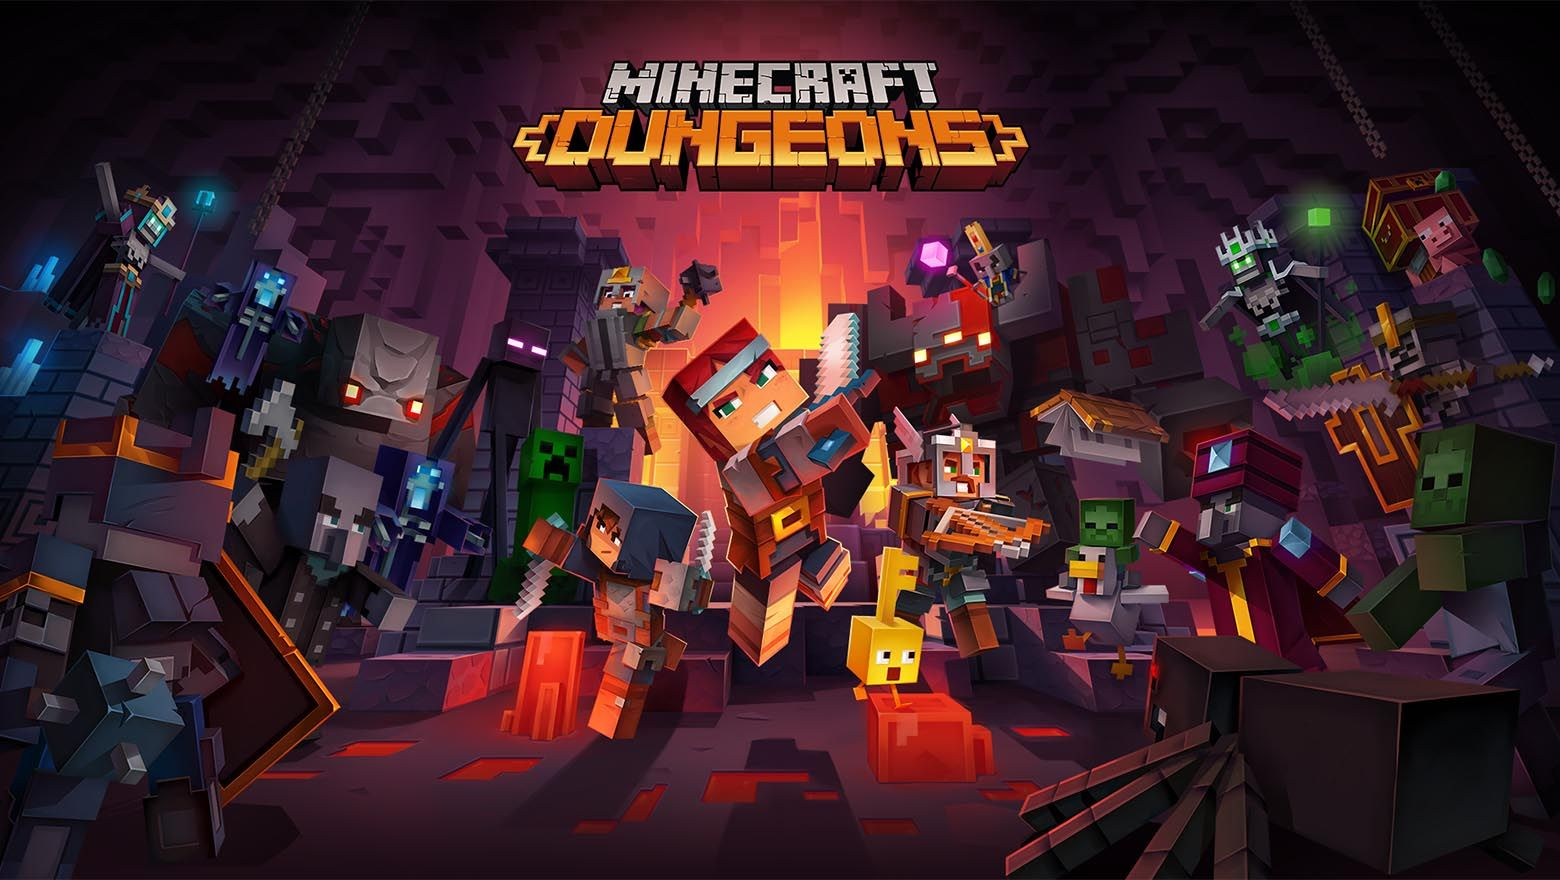 Free Minecraft Dungeons Magnet Link Full Pc Game Installer Codex Skidrow 3dm Cpy Reloaded Minecraft Games Minecraft Dungeon